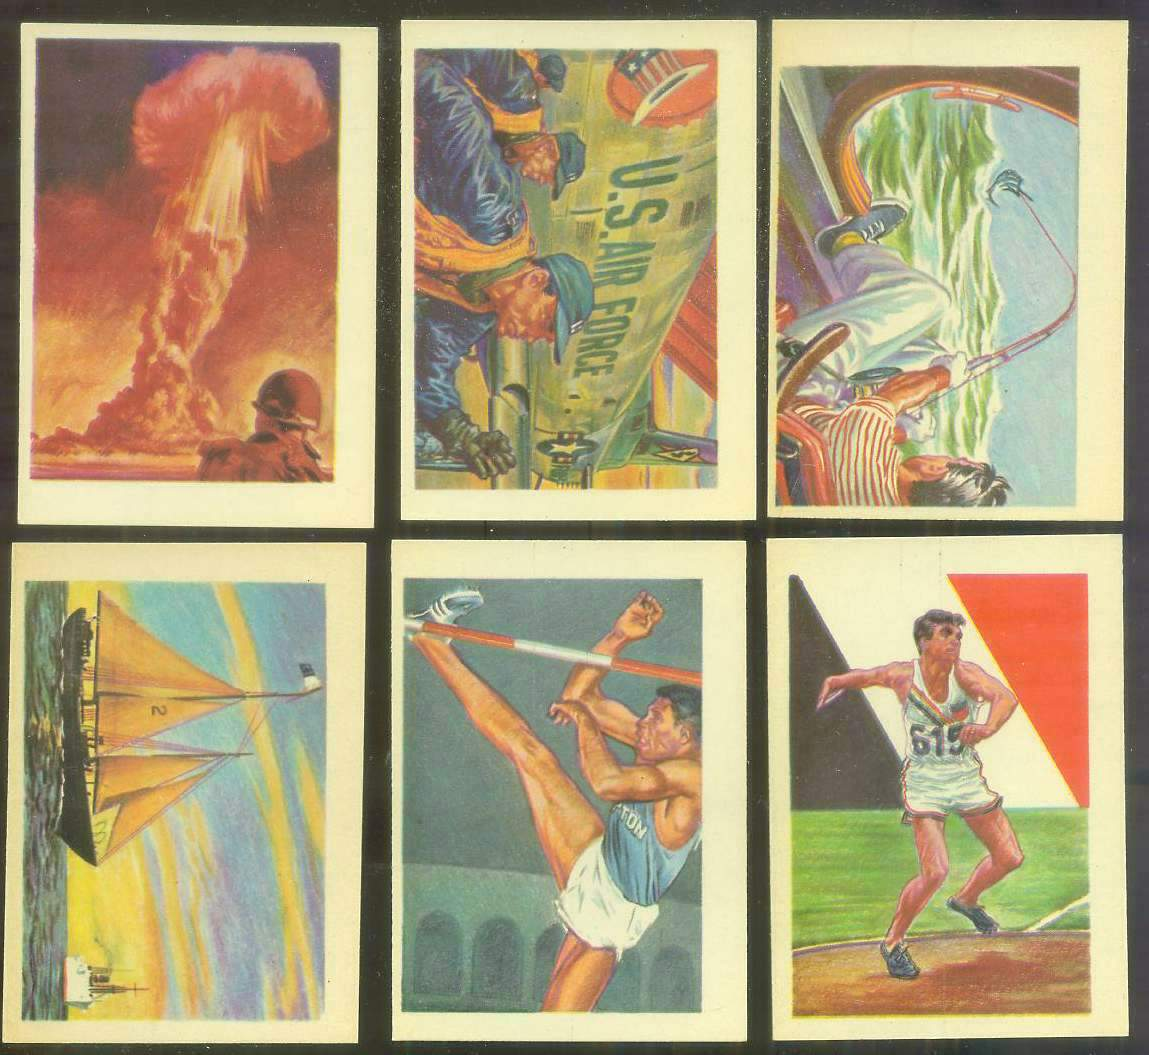 1956 GUM Inc. ADVENTURE #.94 'The Northern Light' Non-Sport cards value